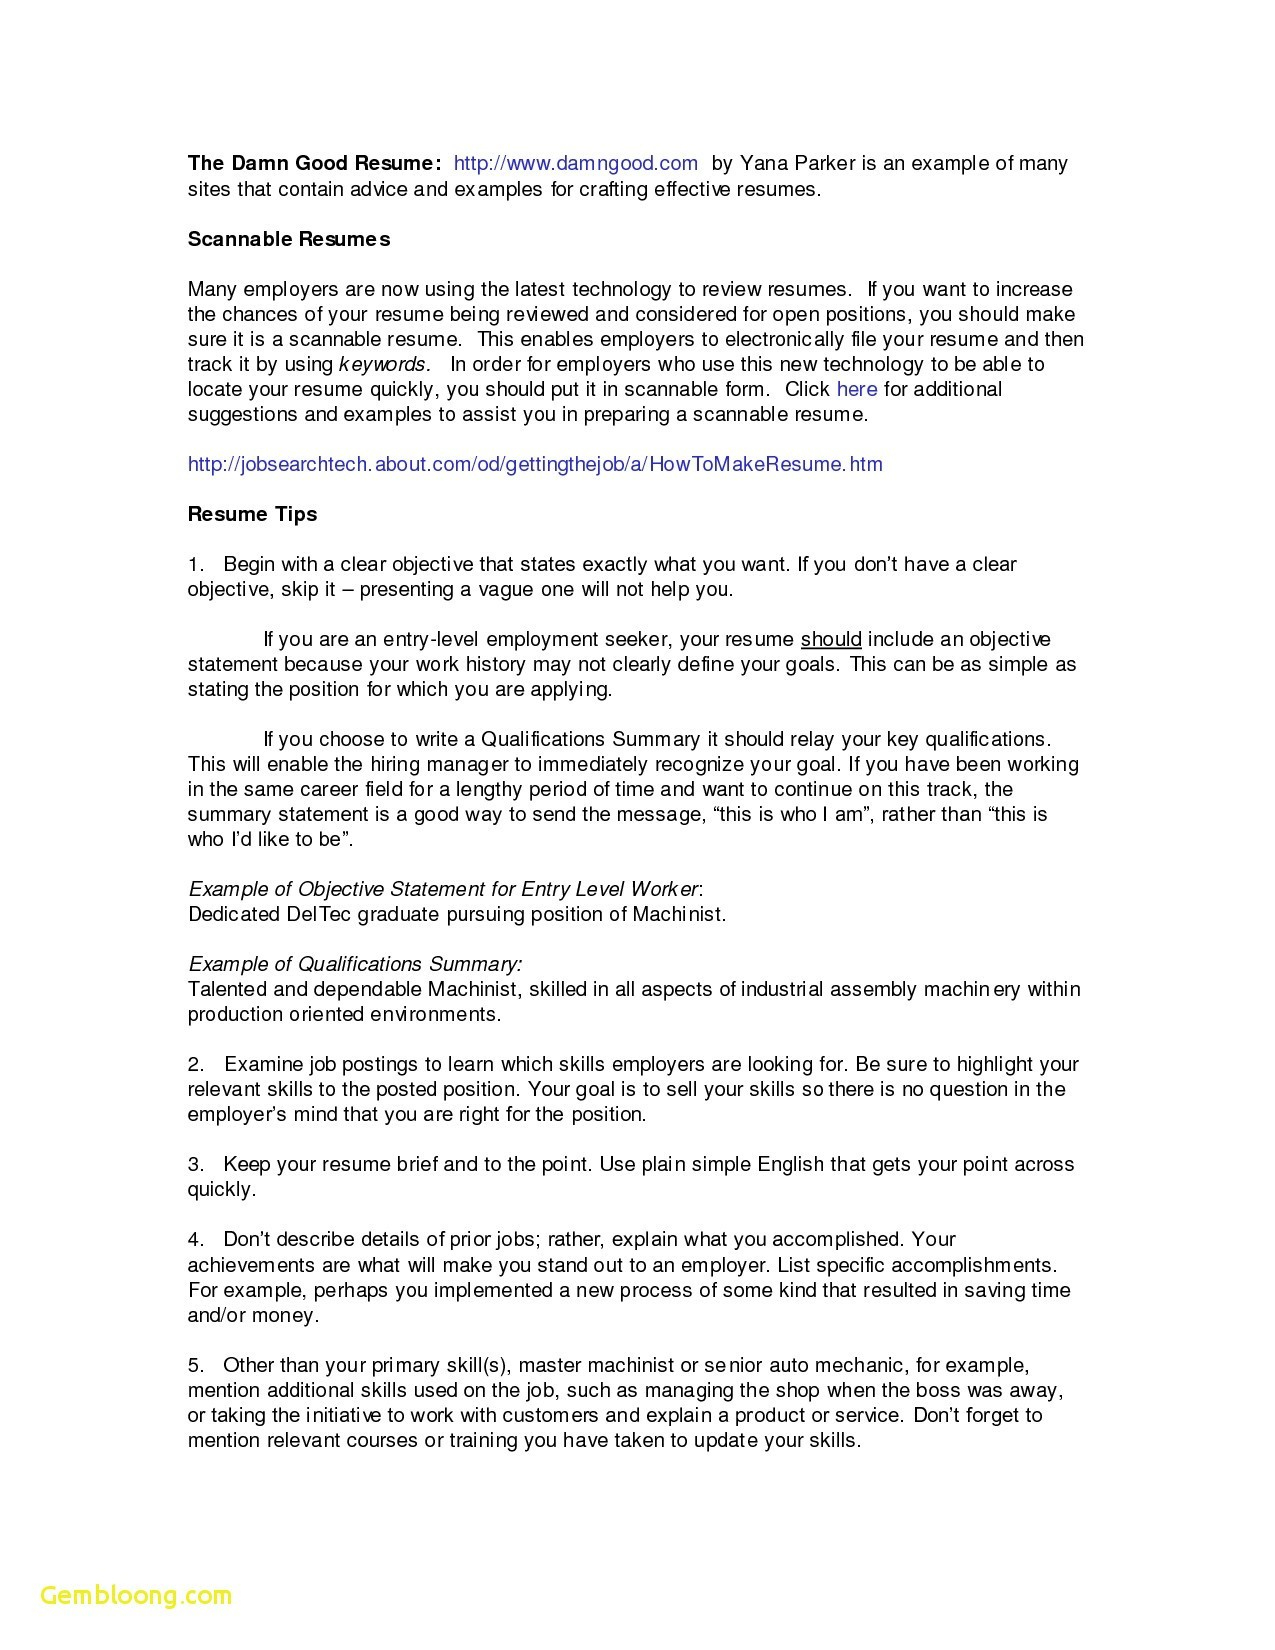 electrical engineer entry level resume Collection-Entry Level Electrical Engineer Resume 15-e